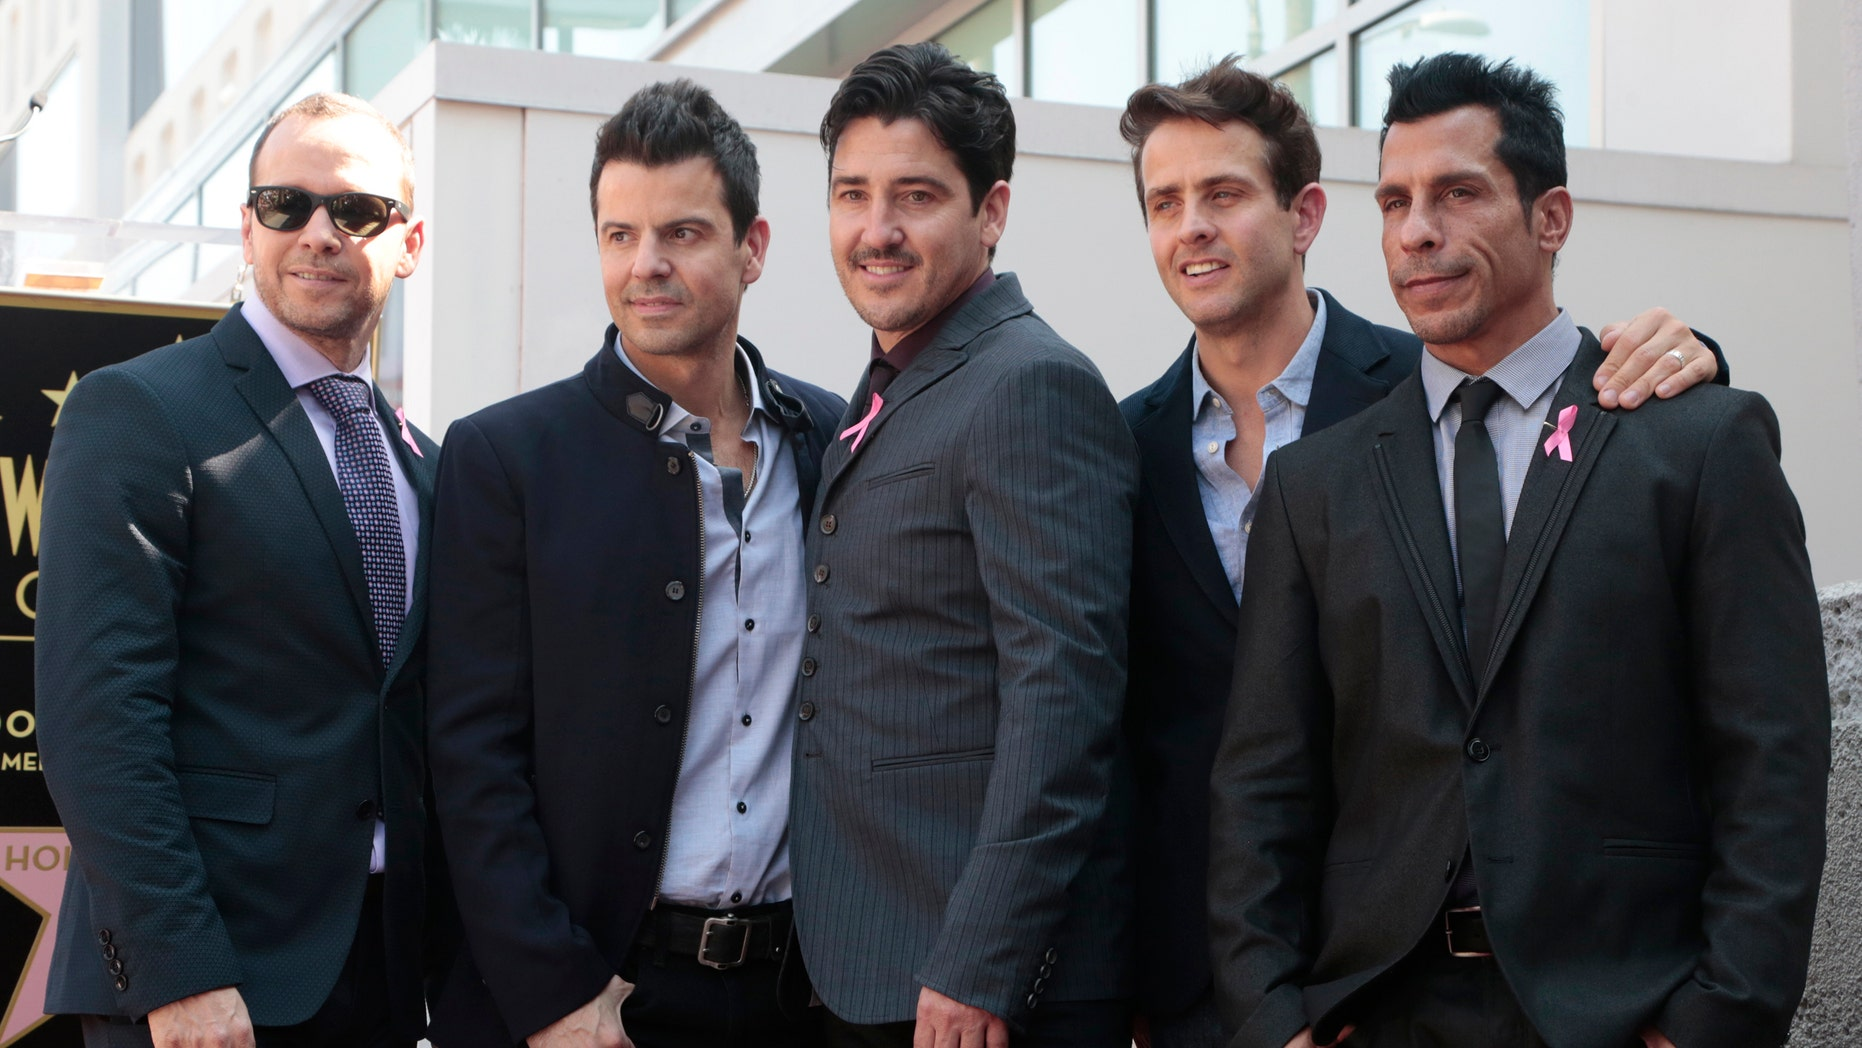 October 9, 2014. New Kids On The Block band members (L-R) Donnie Wahlberg, Jordan Knight, Jonathan Knight, Joey McIntyre and Danny Wood pose on their star after it was unveiled on the Walk of Fame in Hollywood.